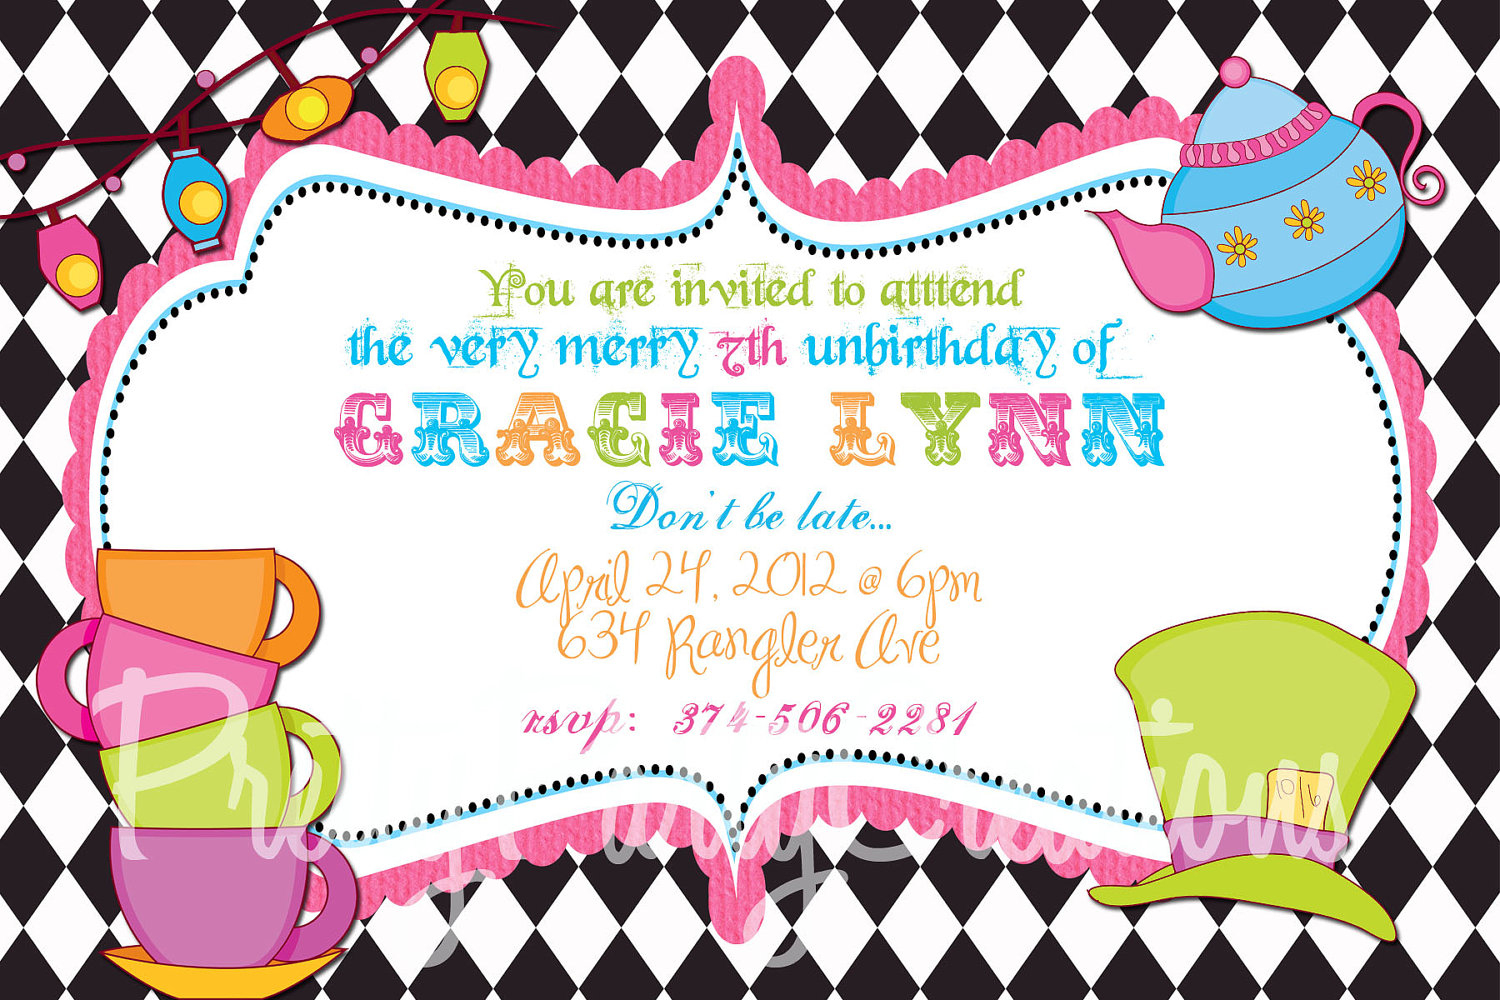 Mad Hatter Invitation Best Mad Hatter Tea Party Invitations Free - Mad Hatter Tea Party Invitations Free Printable